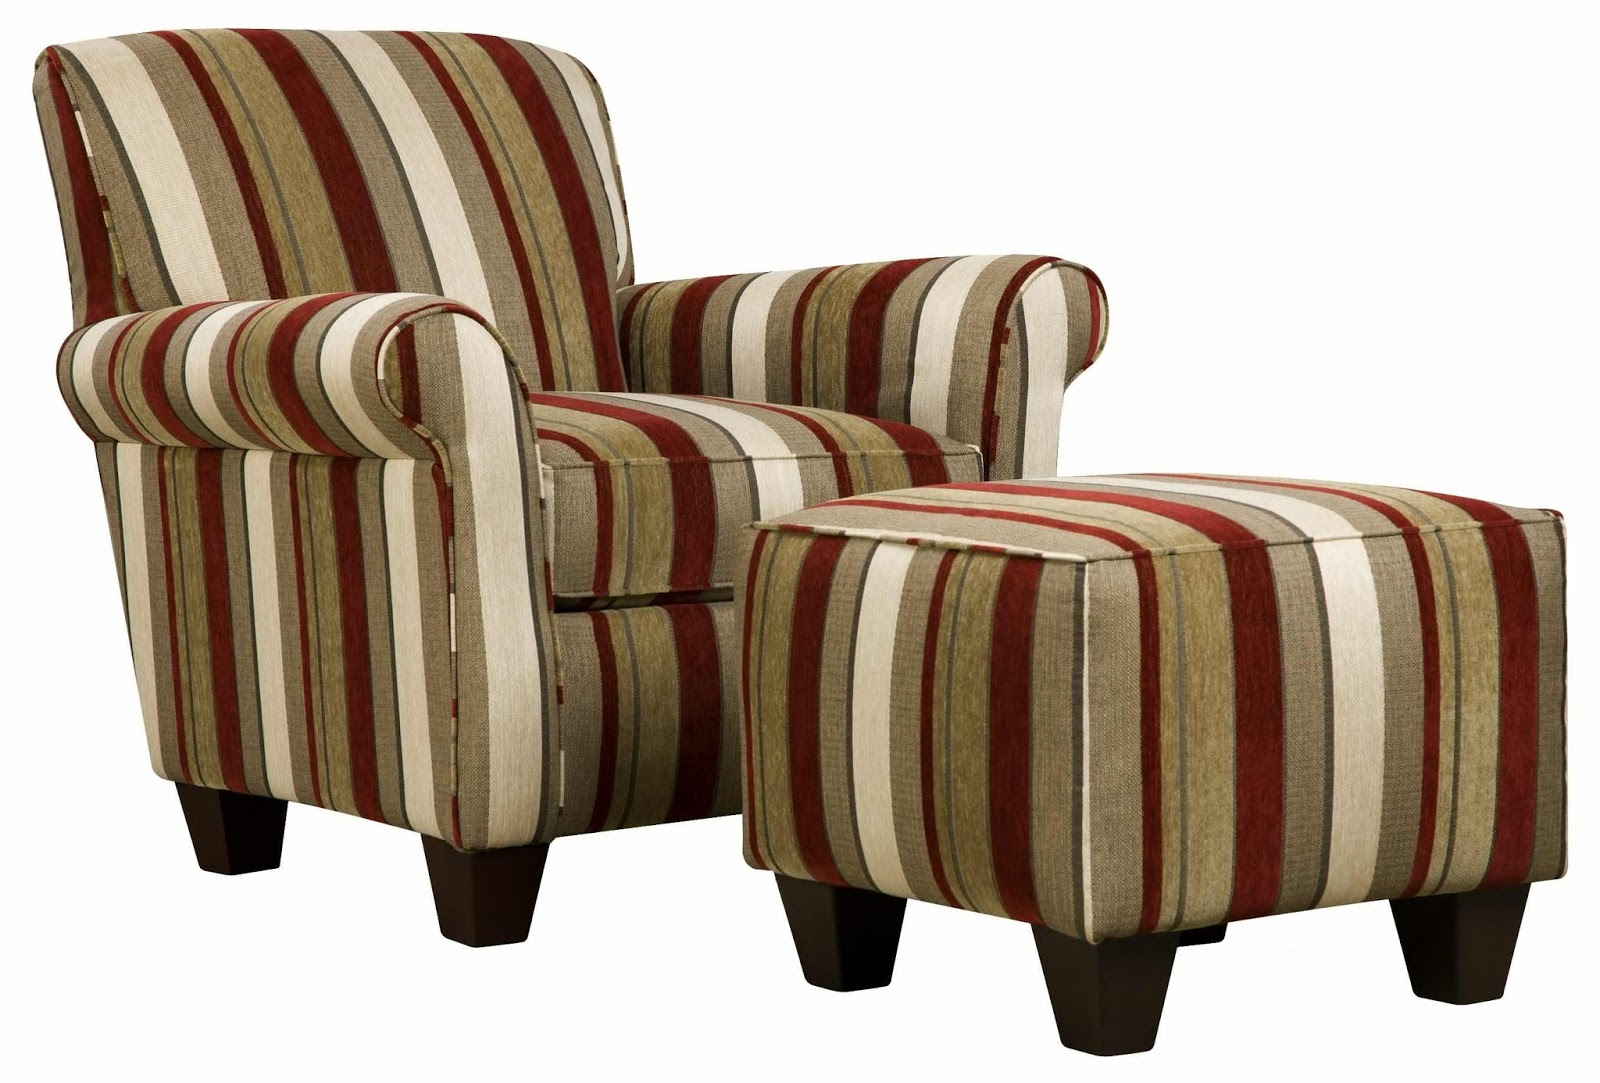 Living Room Chairs with Ottomans Large Style - Home Cheap ...